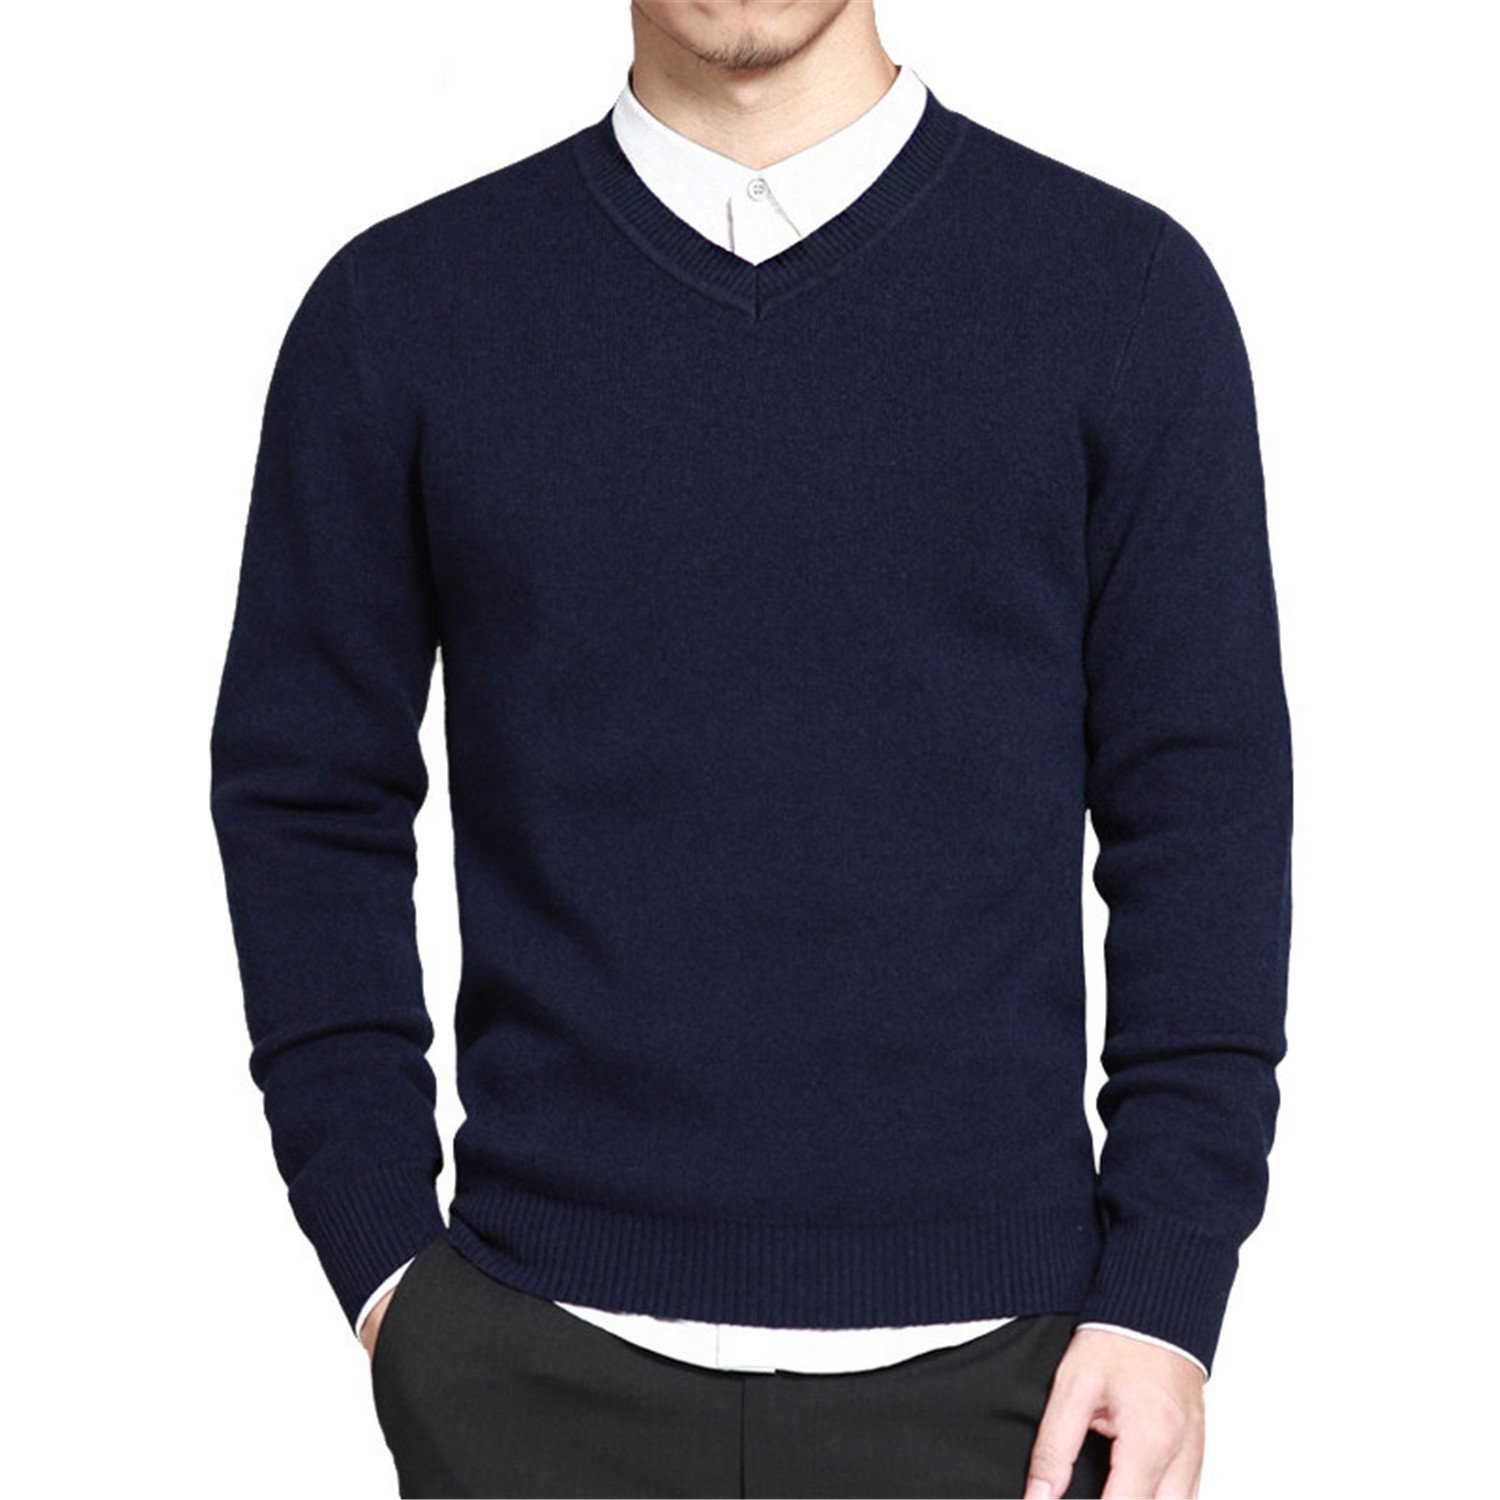 NeeKer Jacket Mens Sweater Pullovers Cotton Knitted V Neck Sweater Jumpers Thin Male Knitwear Blue Red Black M-4XL